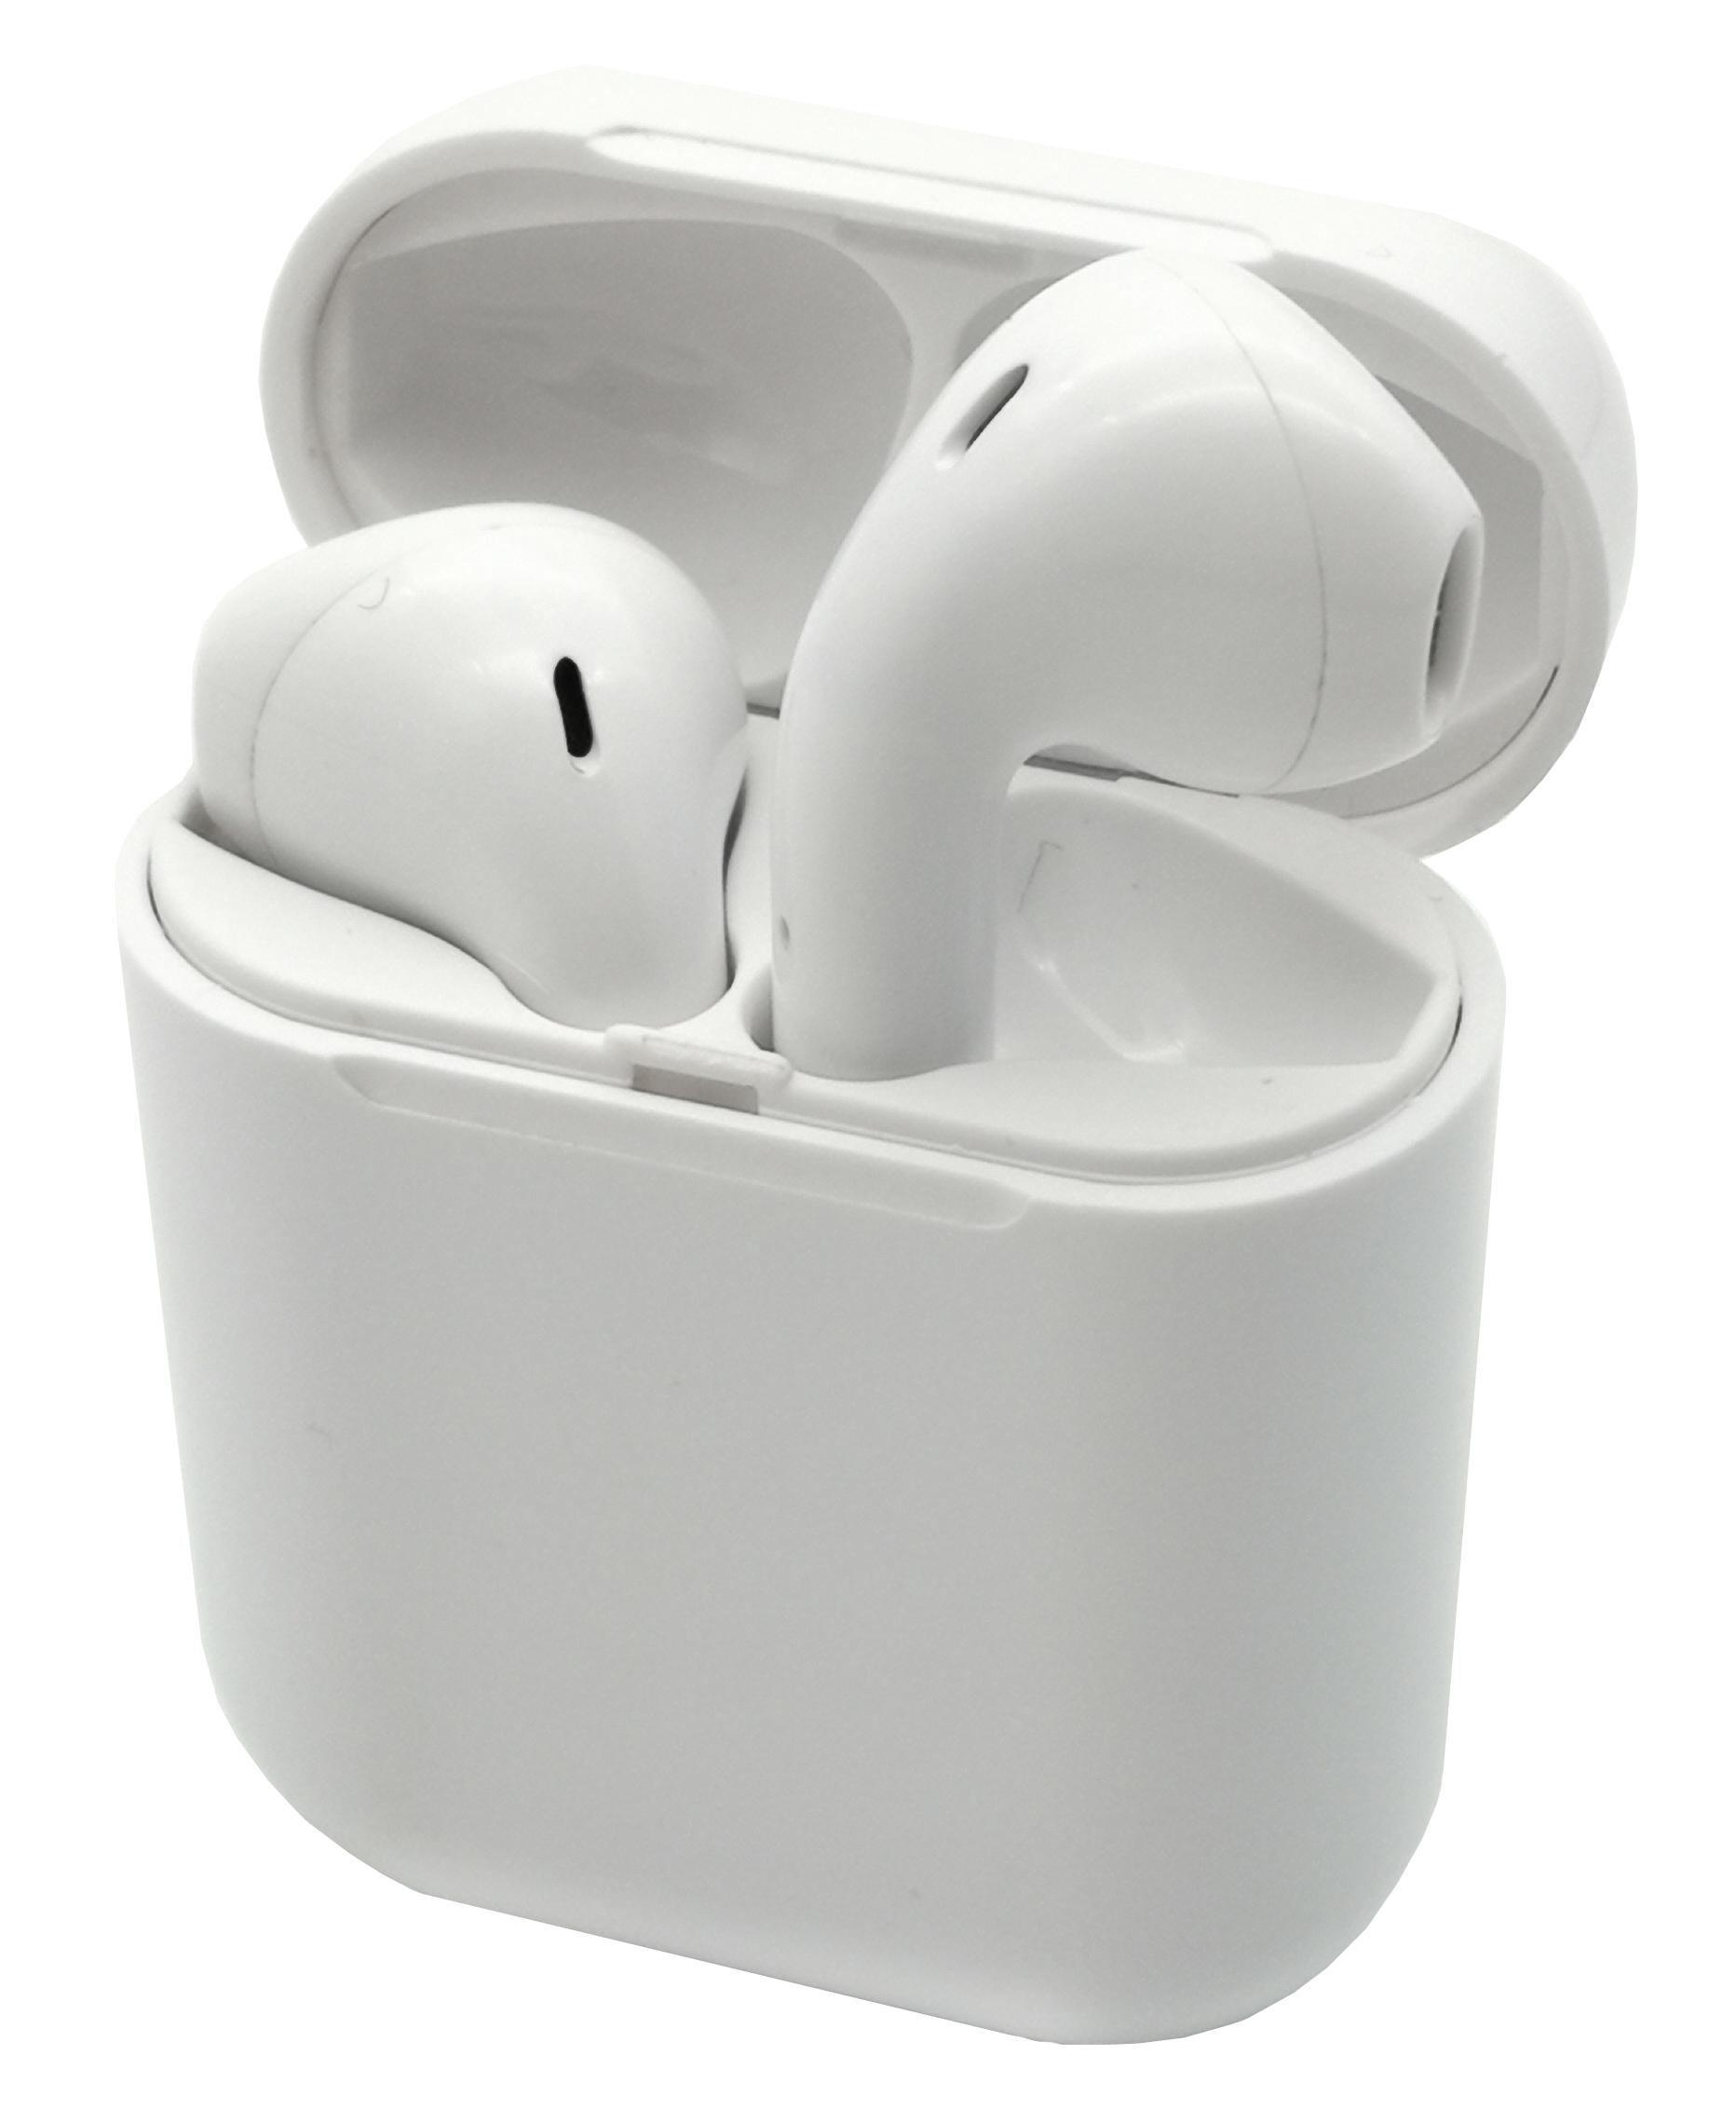 TWS i11 V5.0 TWS stereo headset i11 TWS earbuds, the i11 with a charging box for wireless charging wireless earphone